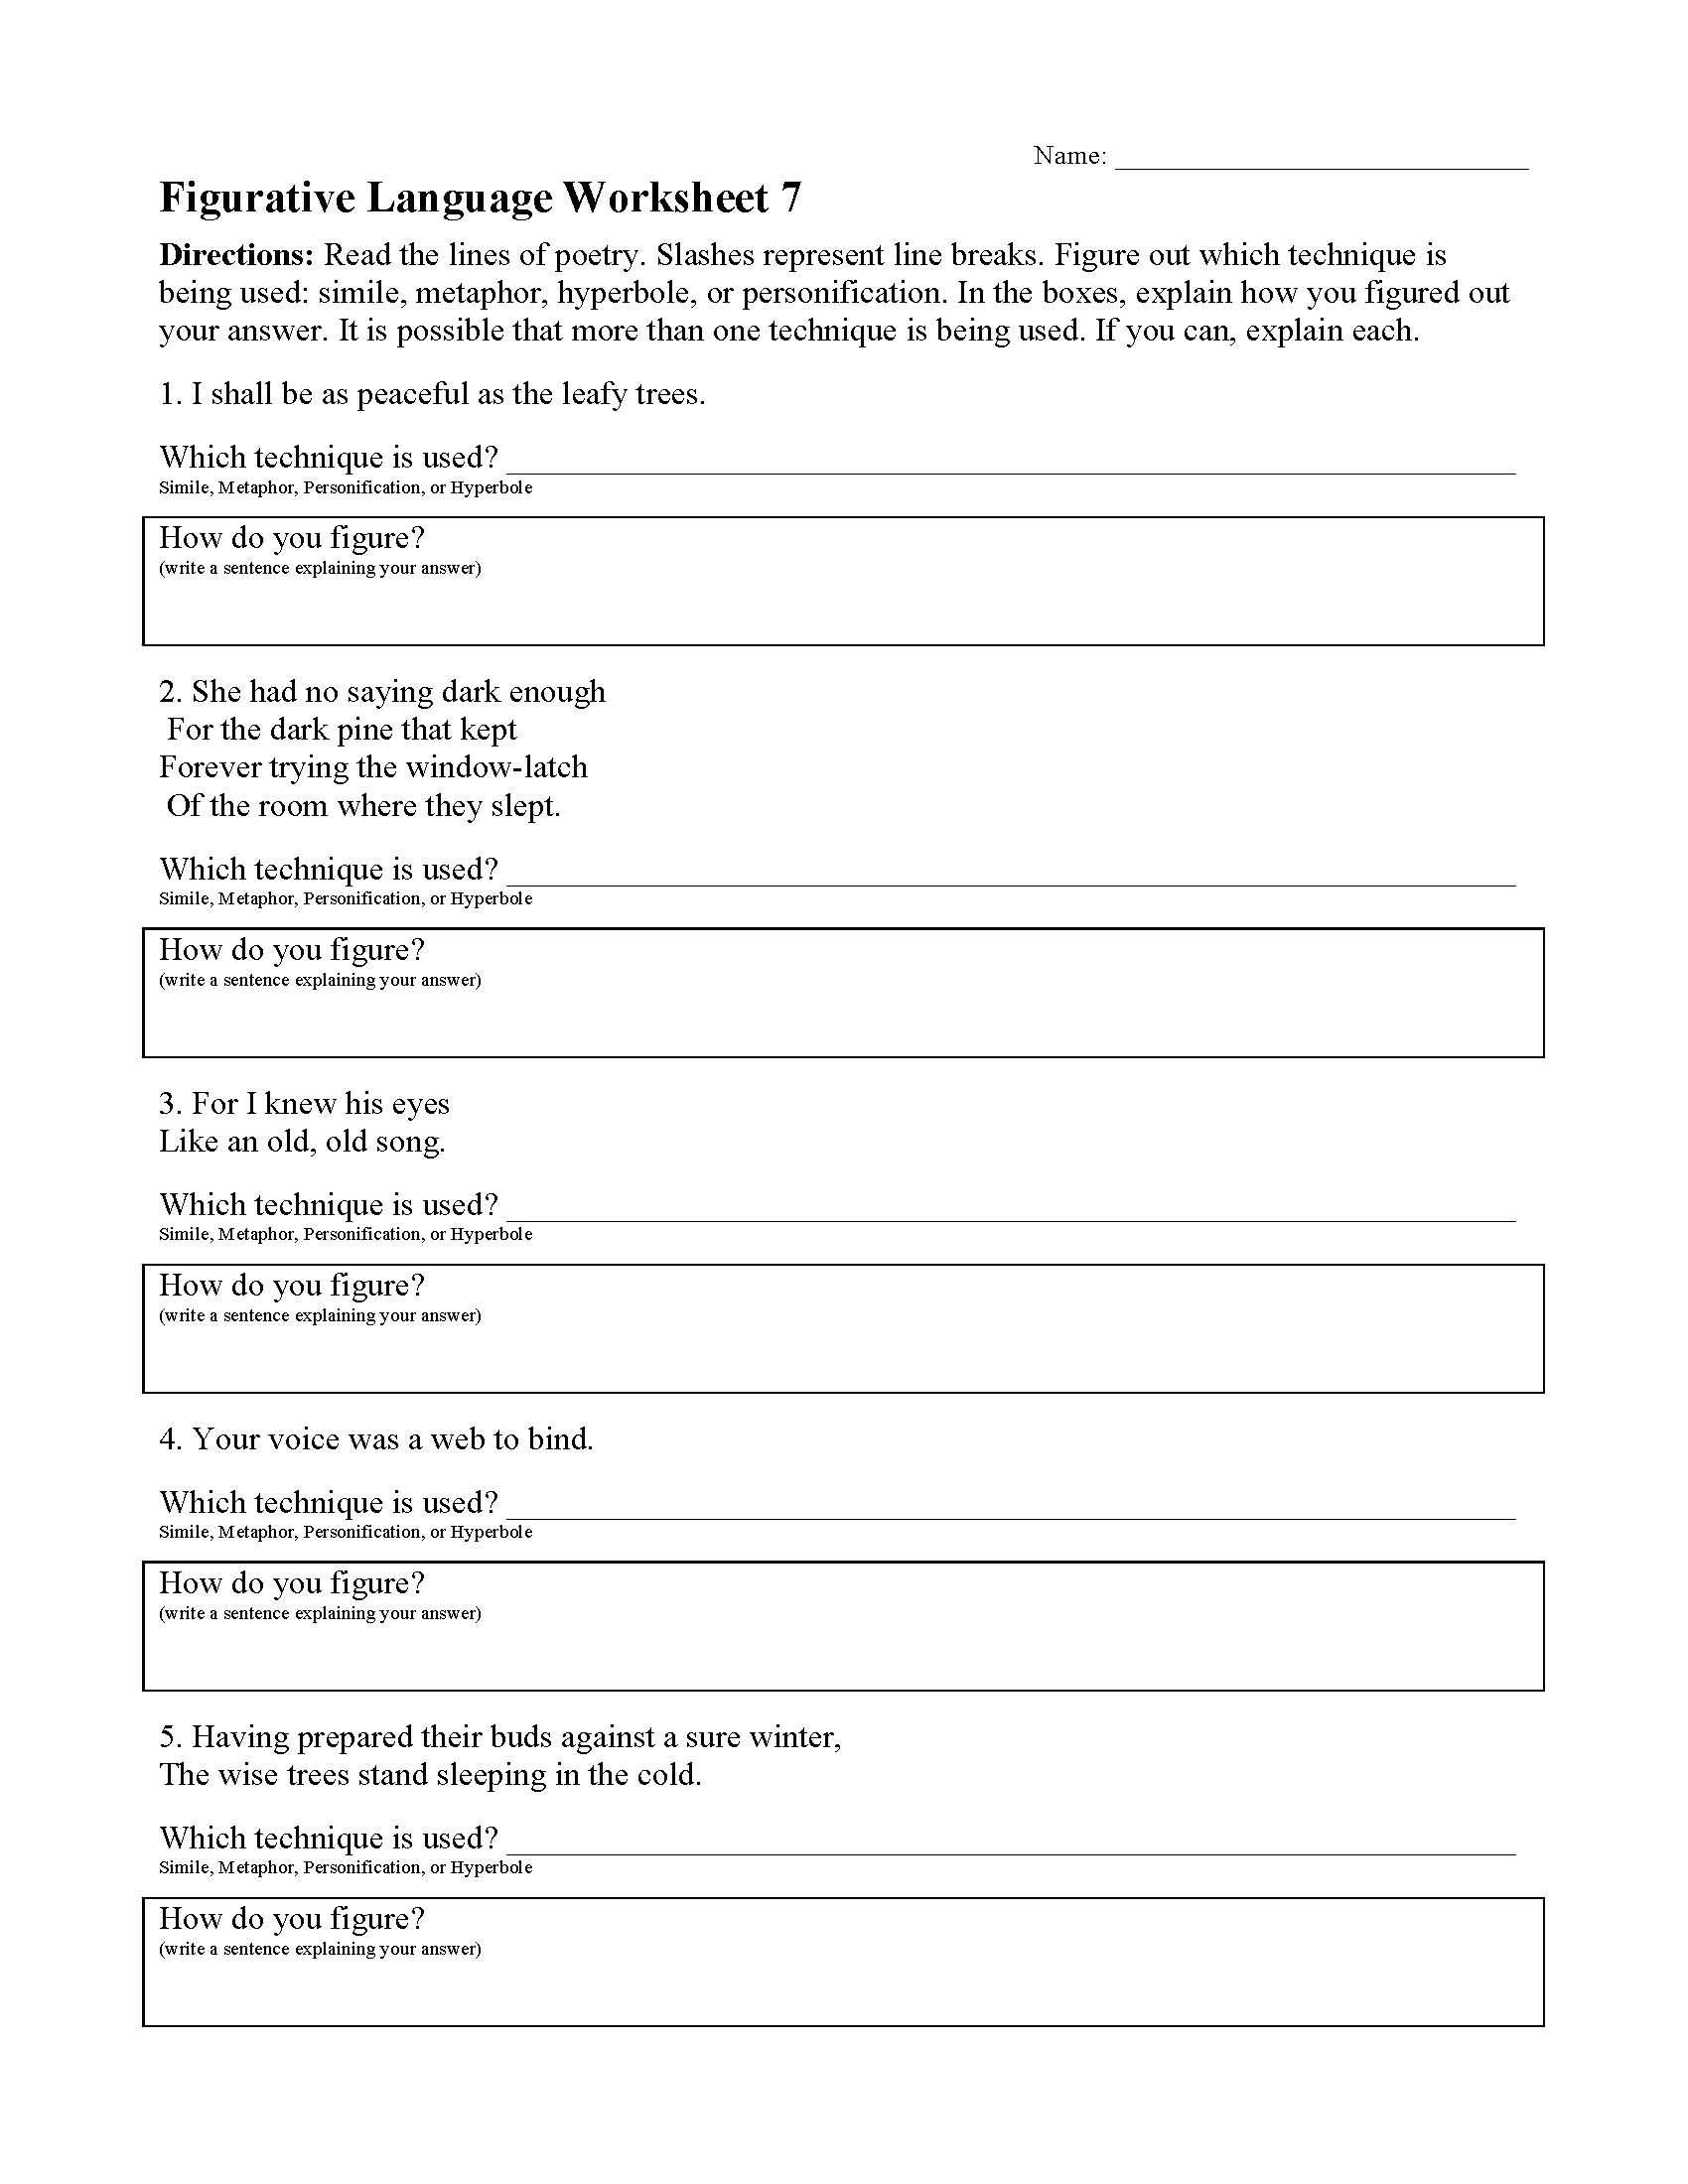 This is a preview image of the Figurative Language Worksheet 7.